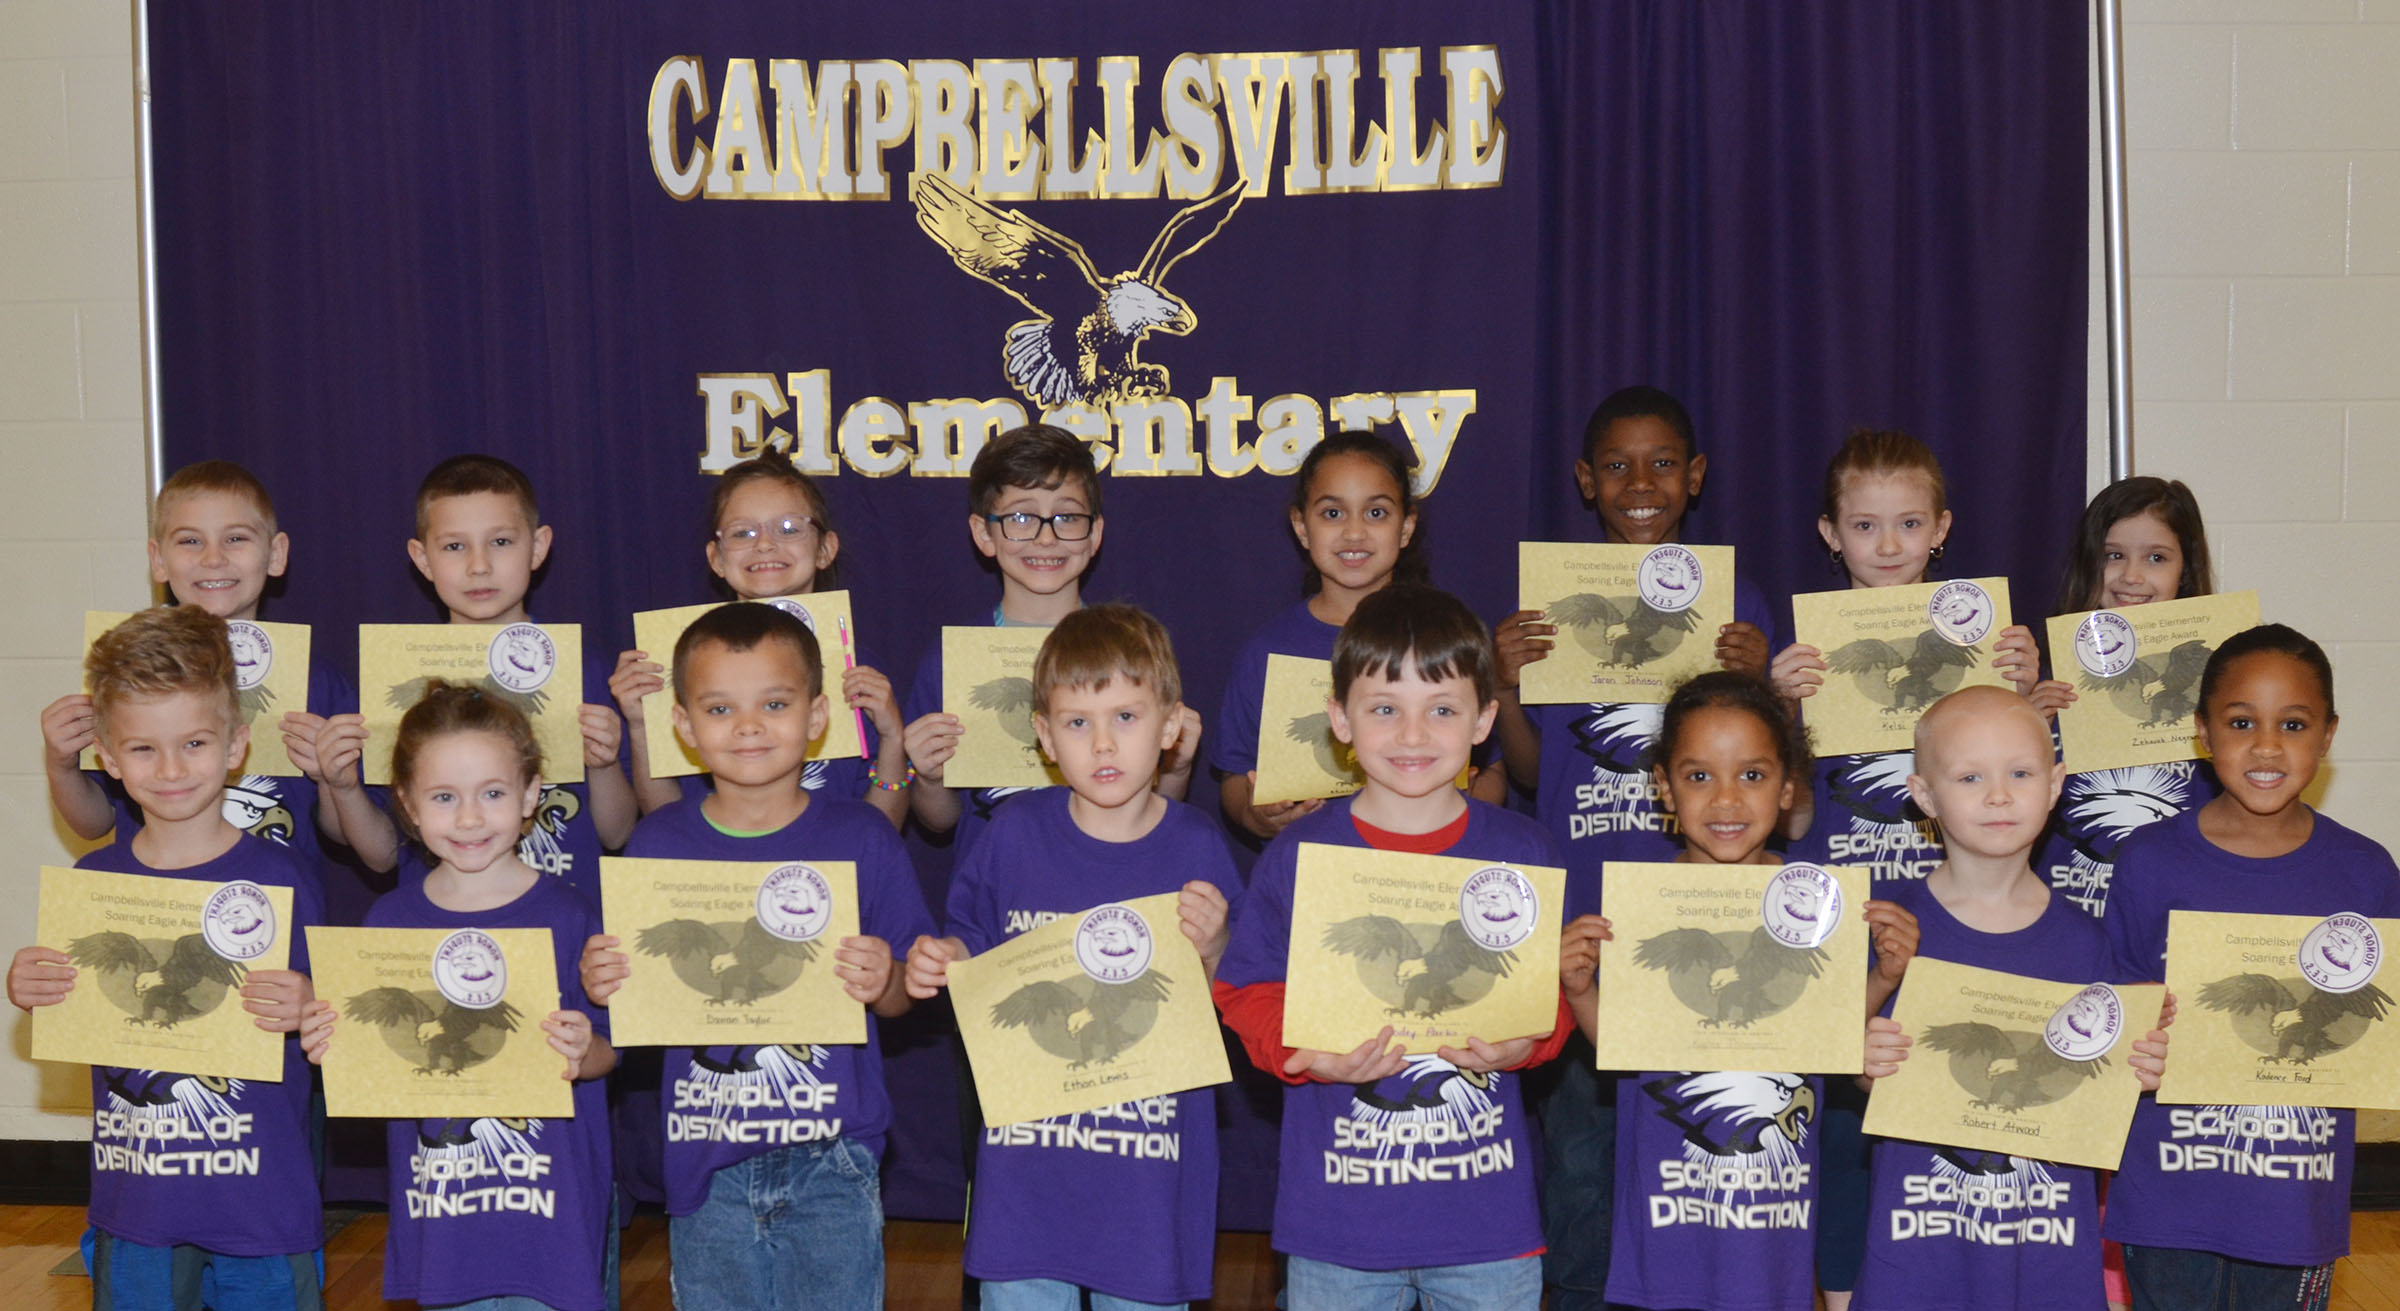 From left, front, are first-grader Parker Hamilton, first-grader Kinsley Graham, kindergarteners Davian Taylor and Ethan Lewis, second-grader Codey Parks, kindergarteners Kaylee Thompson and Robert Atwood and first-grader Kadence Ford. Back, second-grader Joseph Greer, third-grader Grayson Dooley, second-graders Kaylee Lamer and Tye Rhodes, first-grader Maleigha Travis and third-graders Jaron Johnson, Kelsi Schuck and Zahavah Negron.